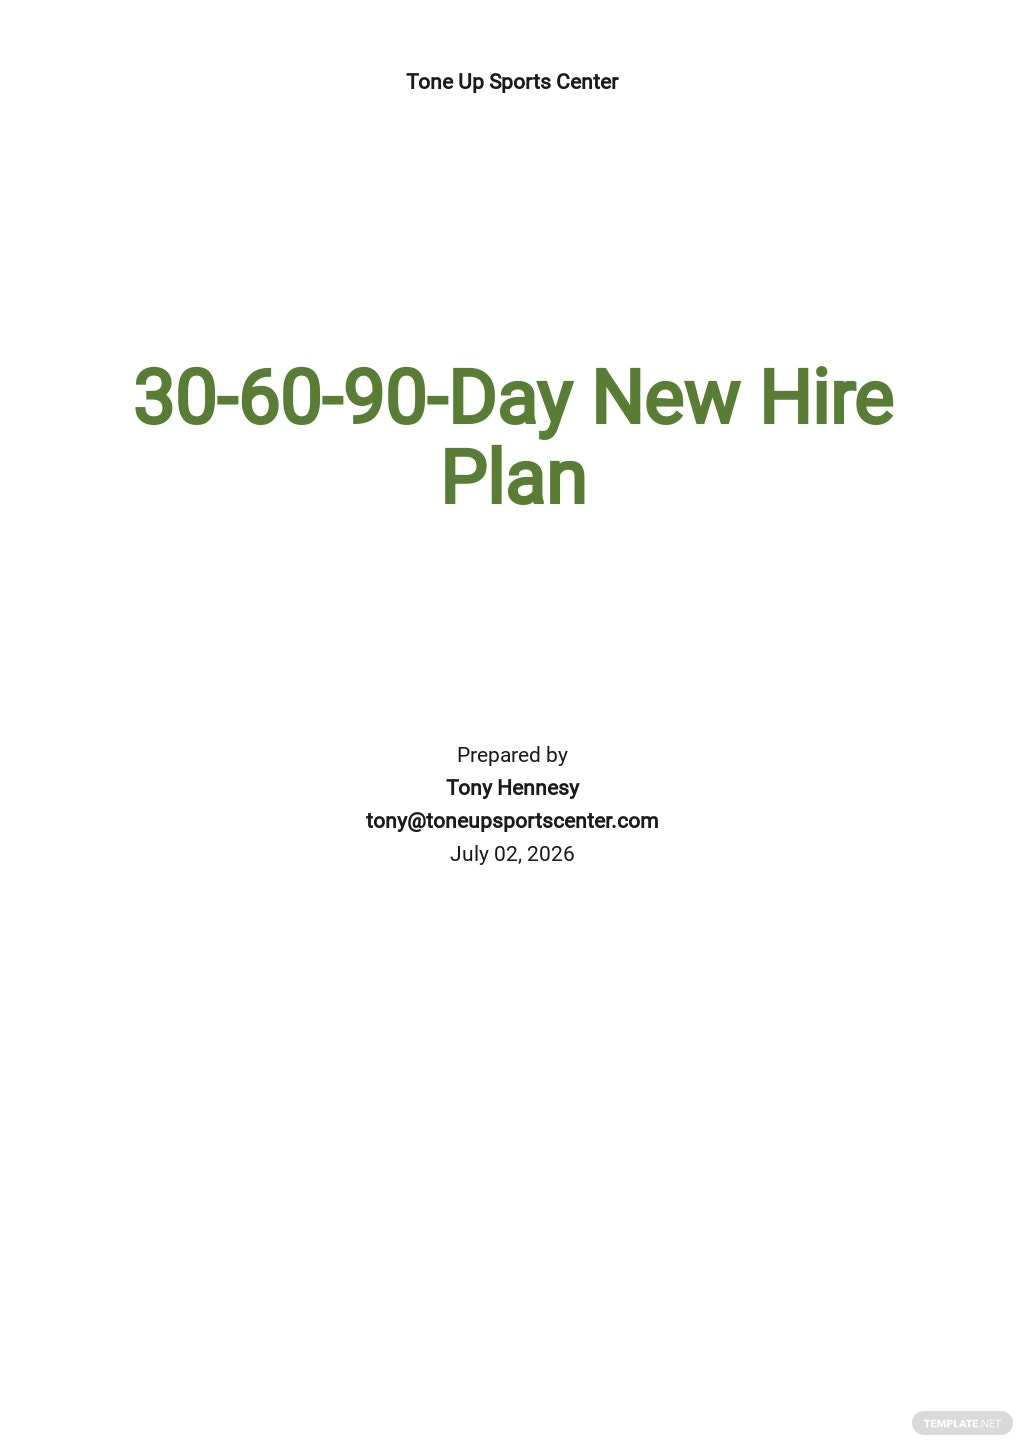 30-60-90-Day New Hire Plan Template